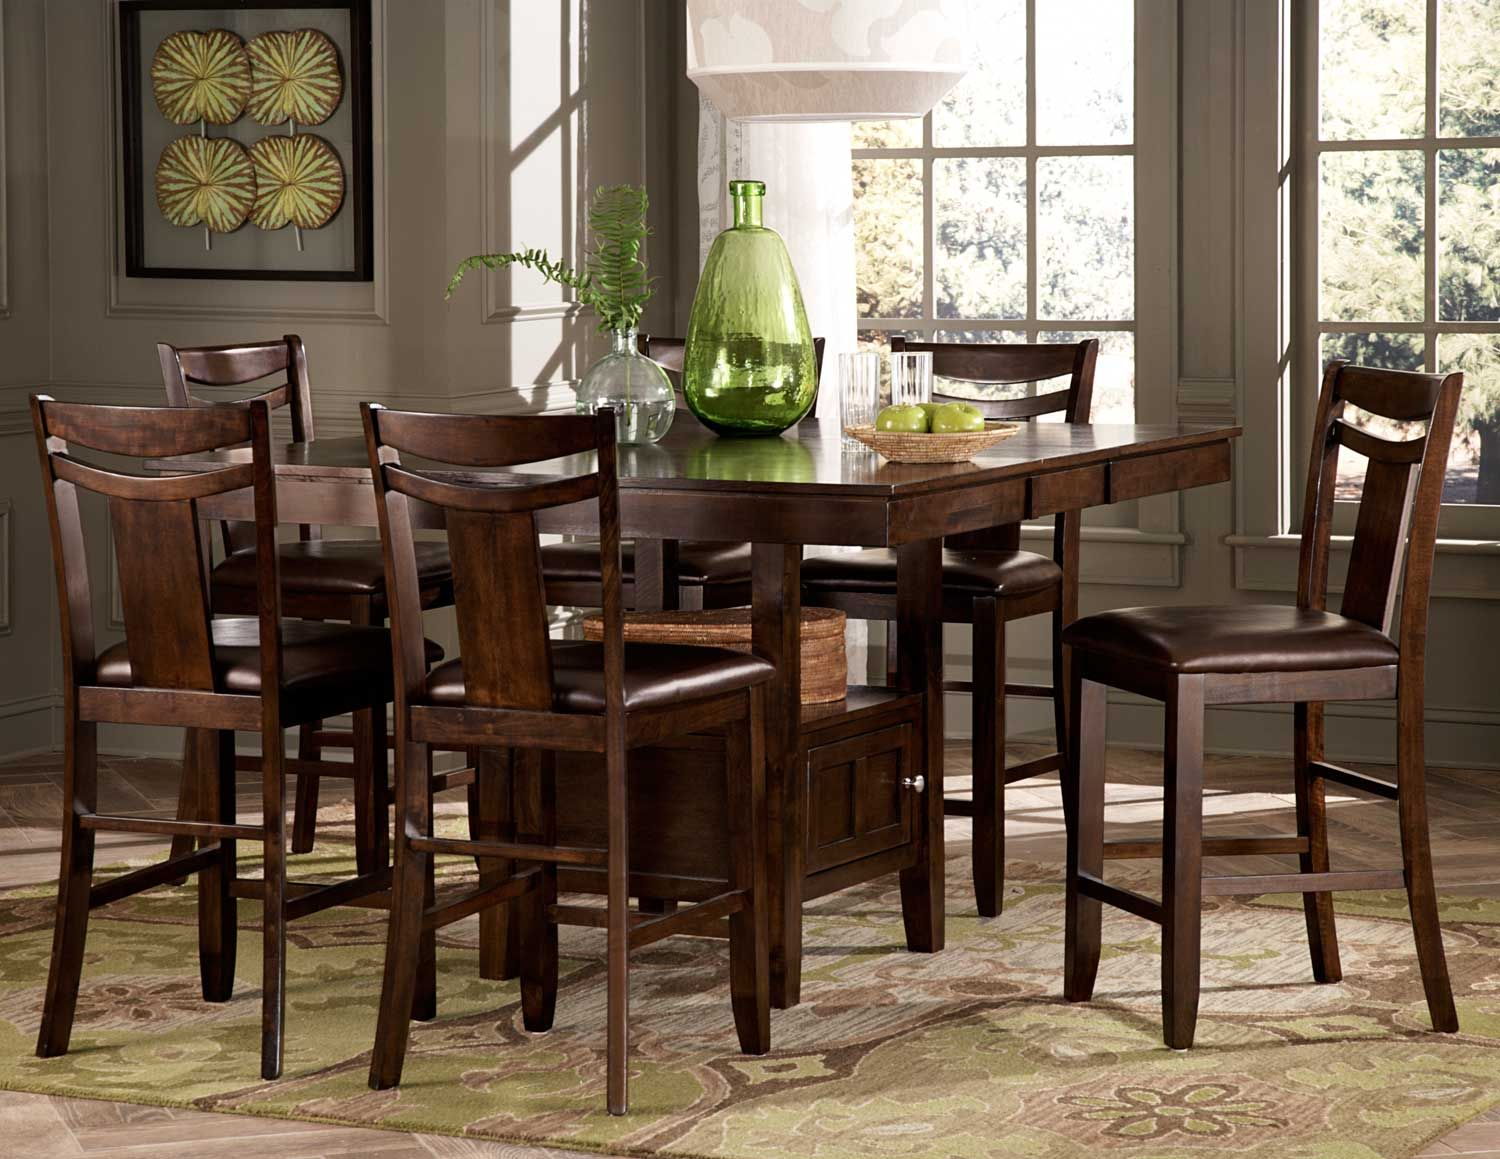 counter height kitchen table Homelegance 36 Broome Counter Height Dining Table Set